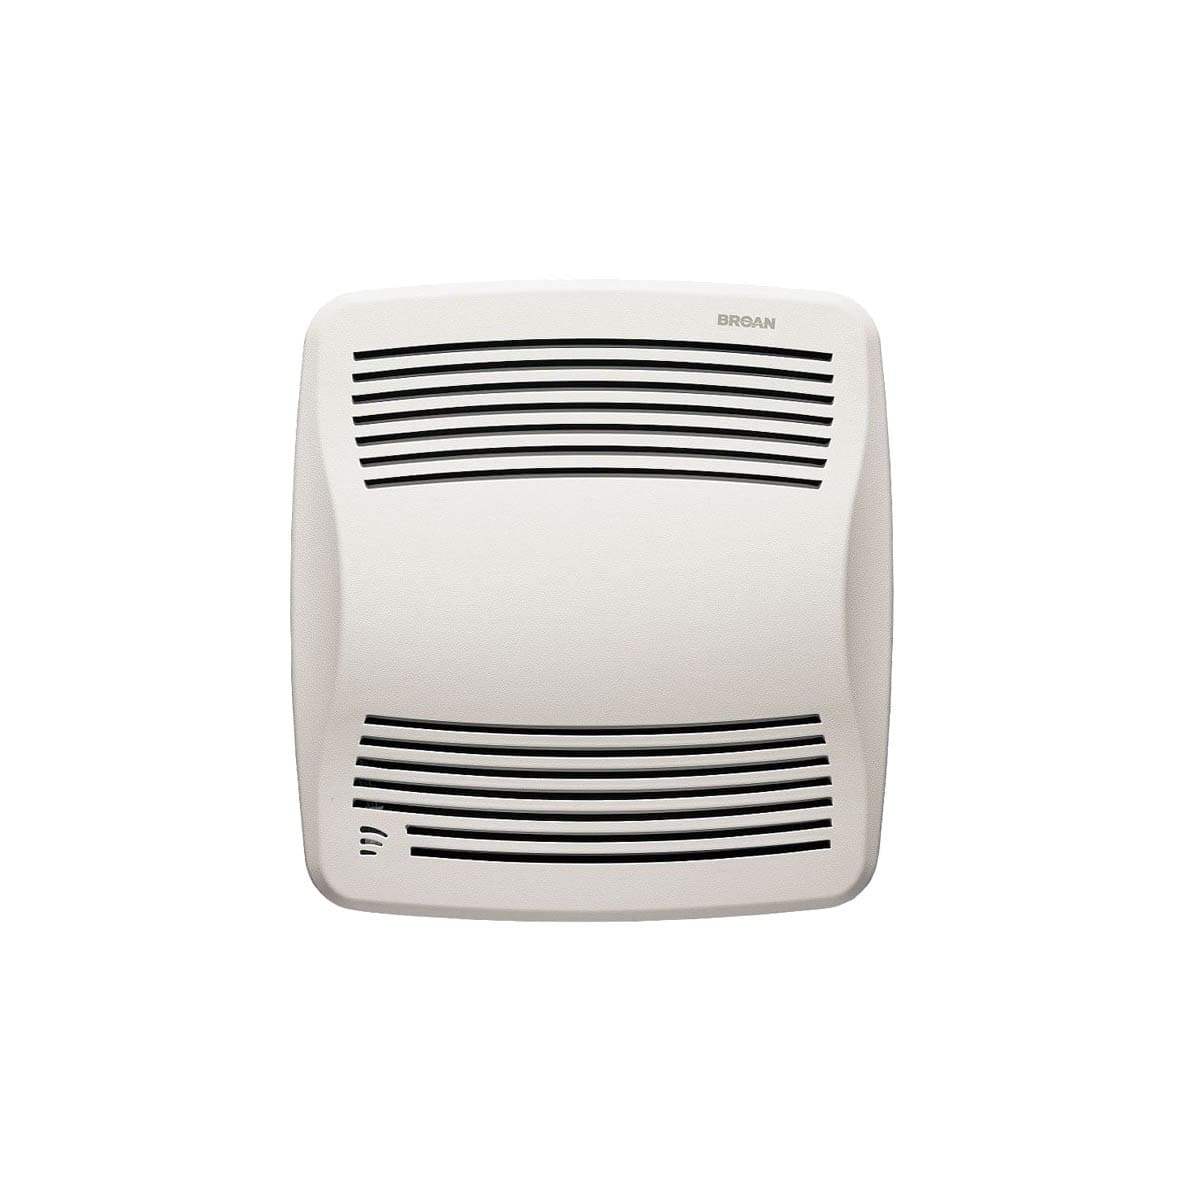 110 cfm 0 7 sone ceiling mounted energy star rated and hvi certified bath  fan with humidity sensor from the qt collection